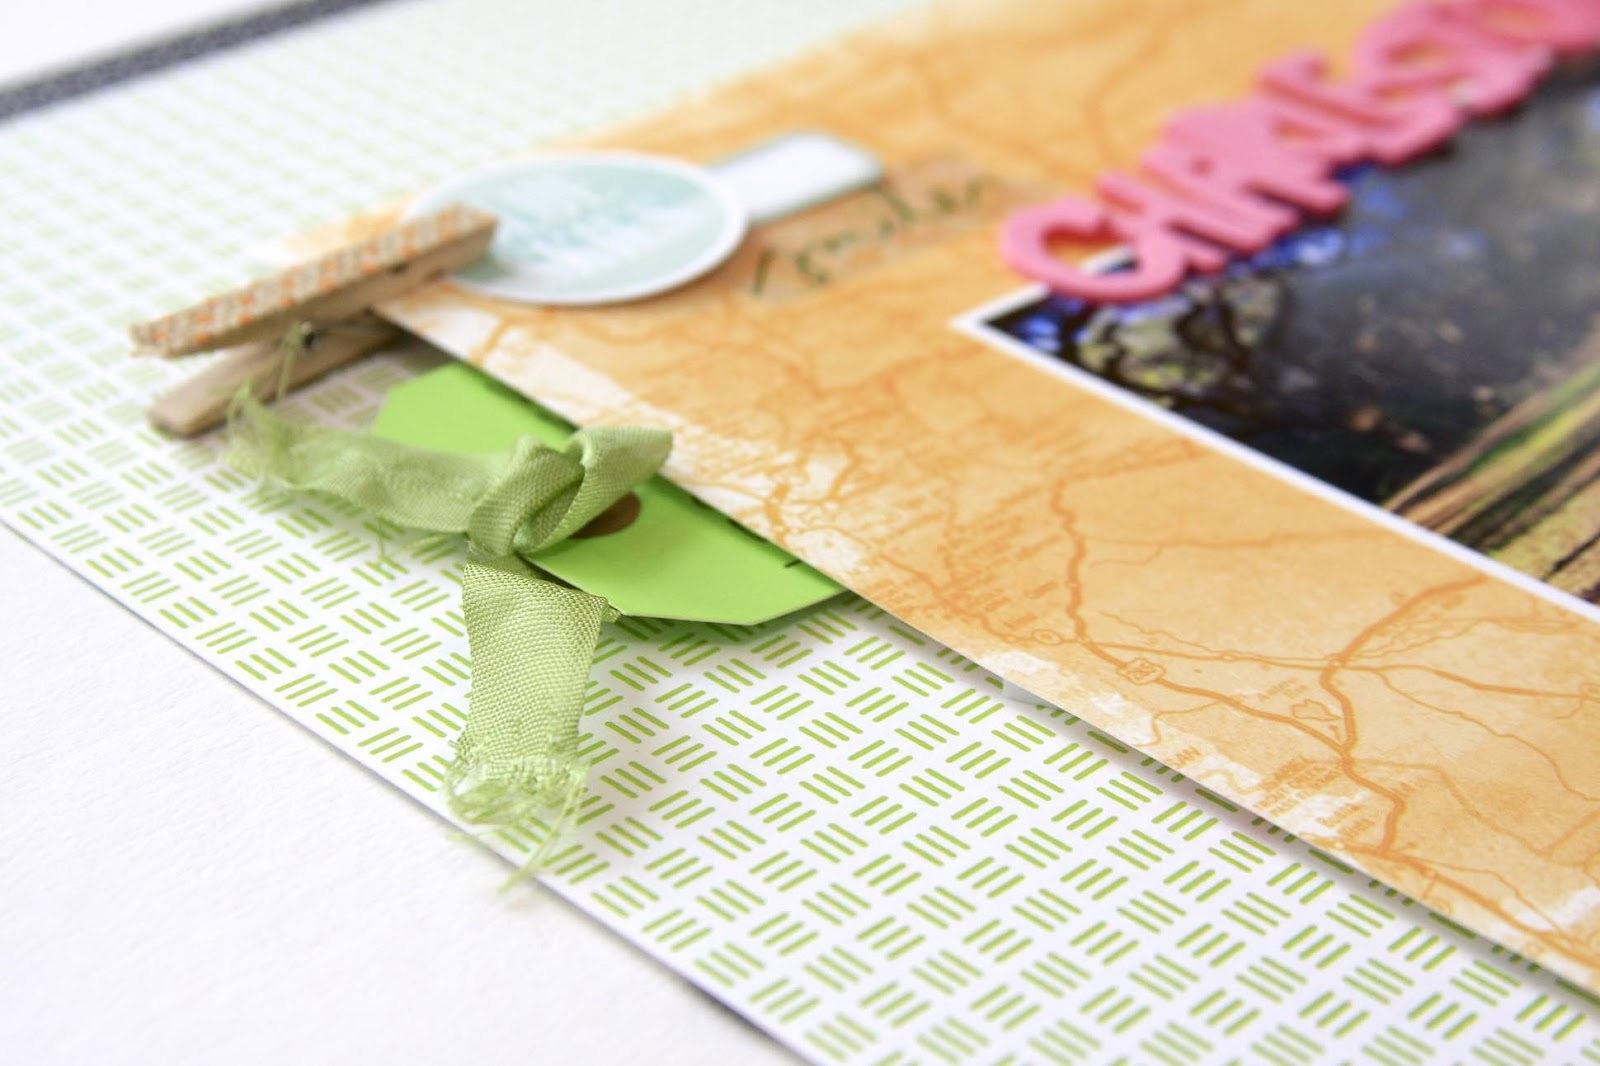 #journaling #hidden #scrapbooking #clusters #layering